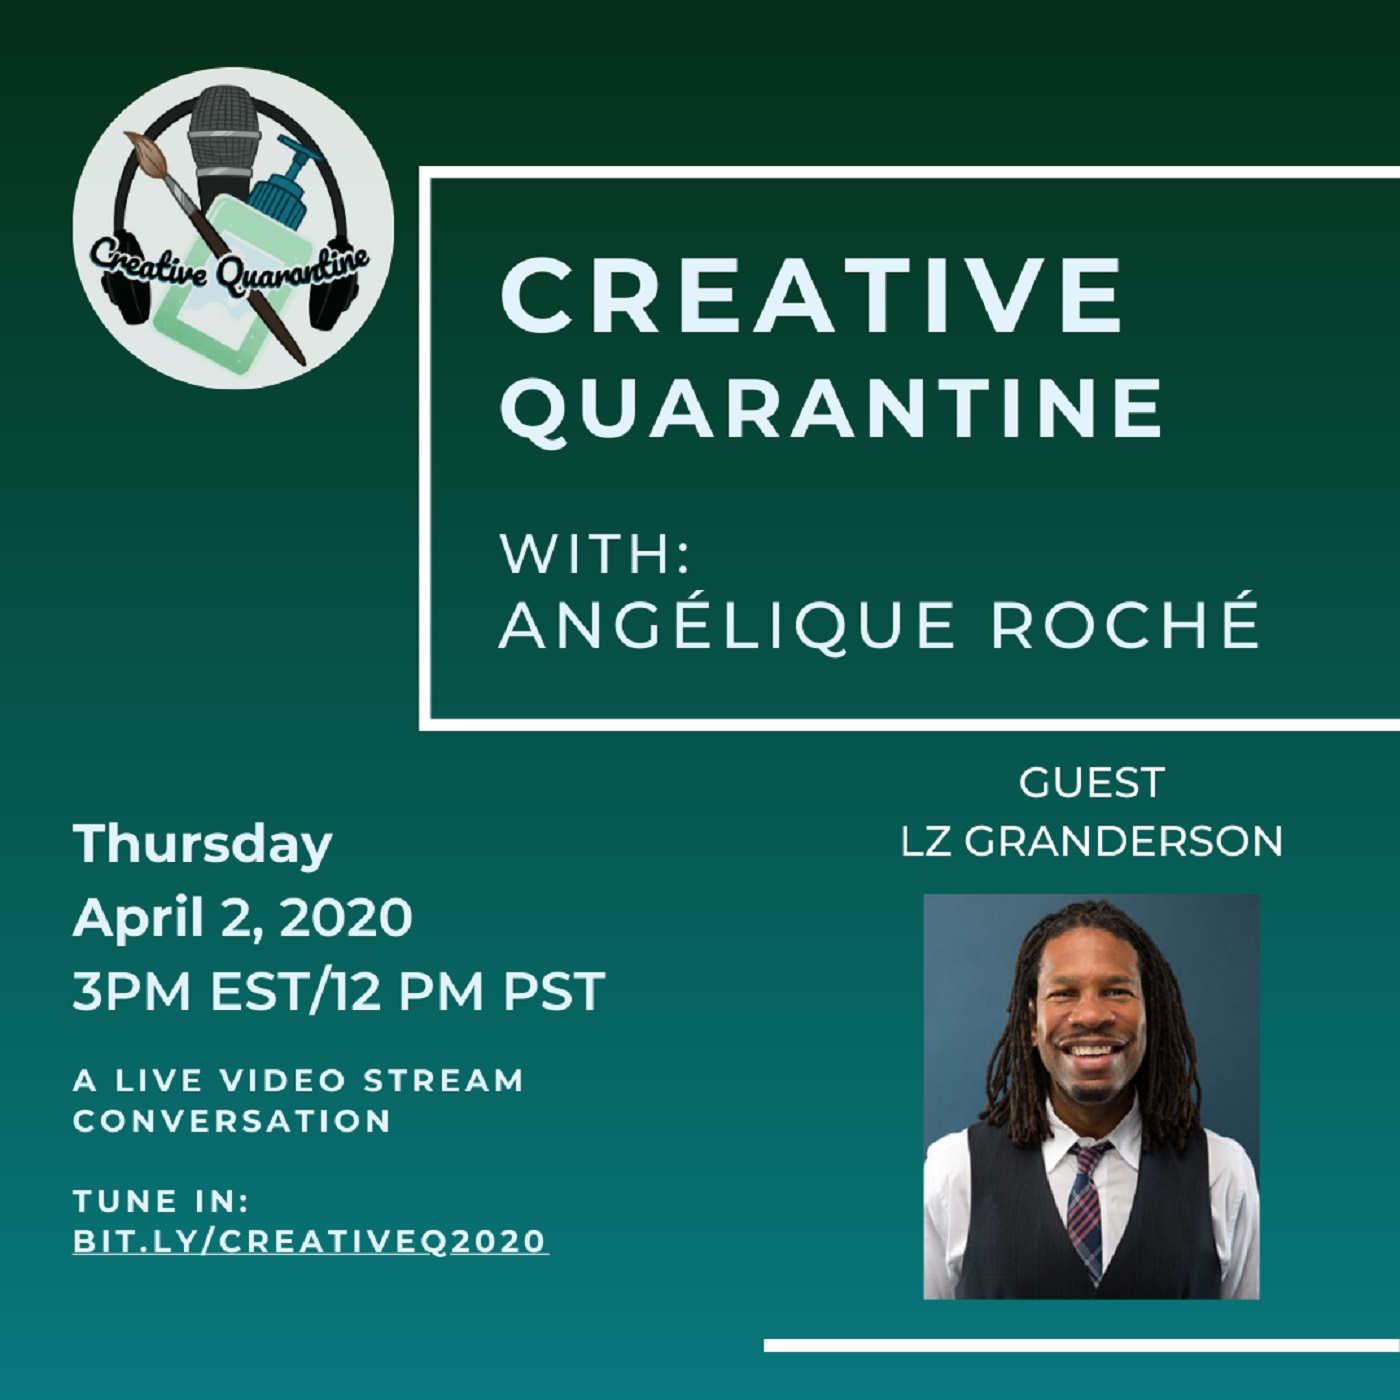 Creative Quarantine - Episode 9: Host/Sport Journalist LZ Granderson